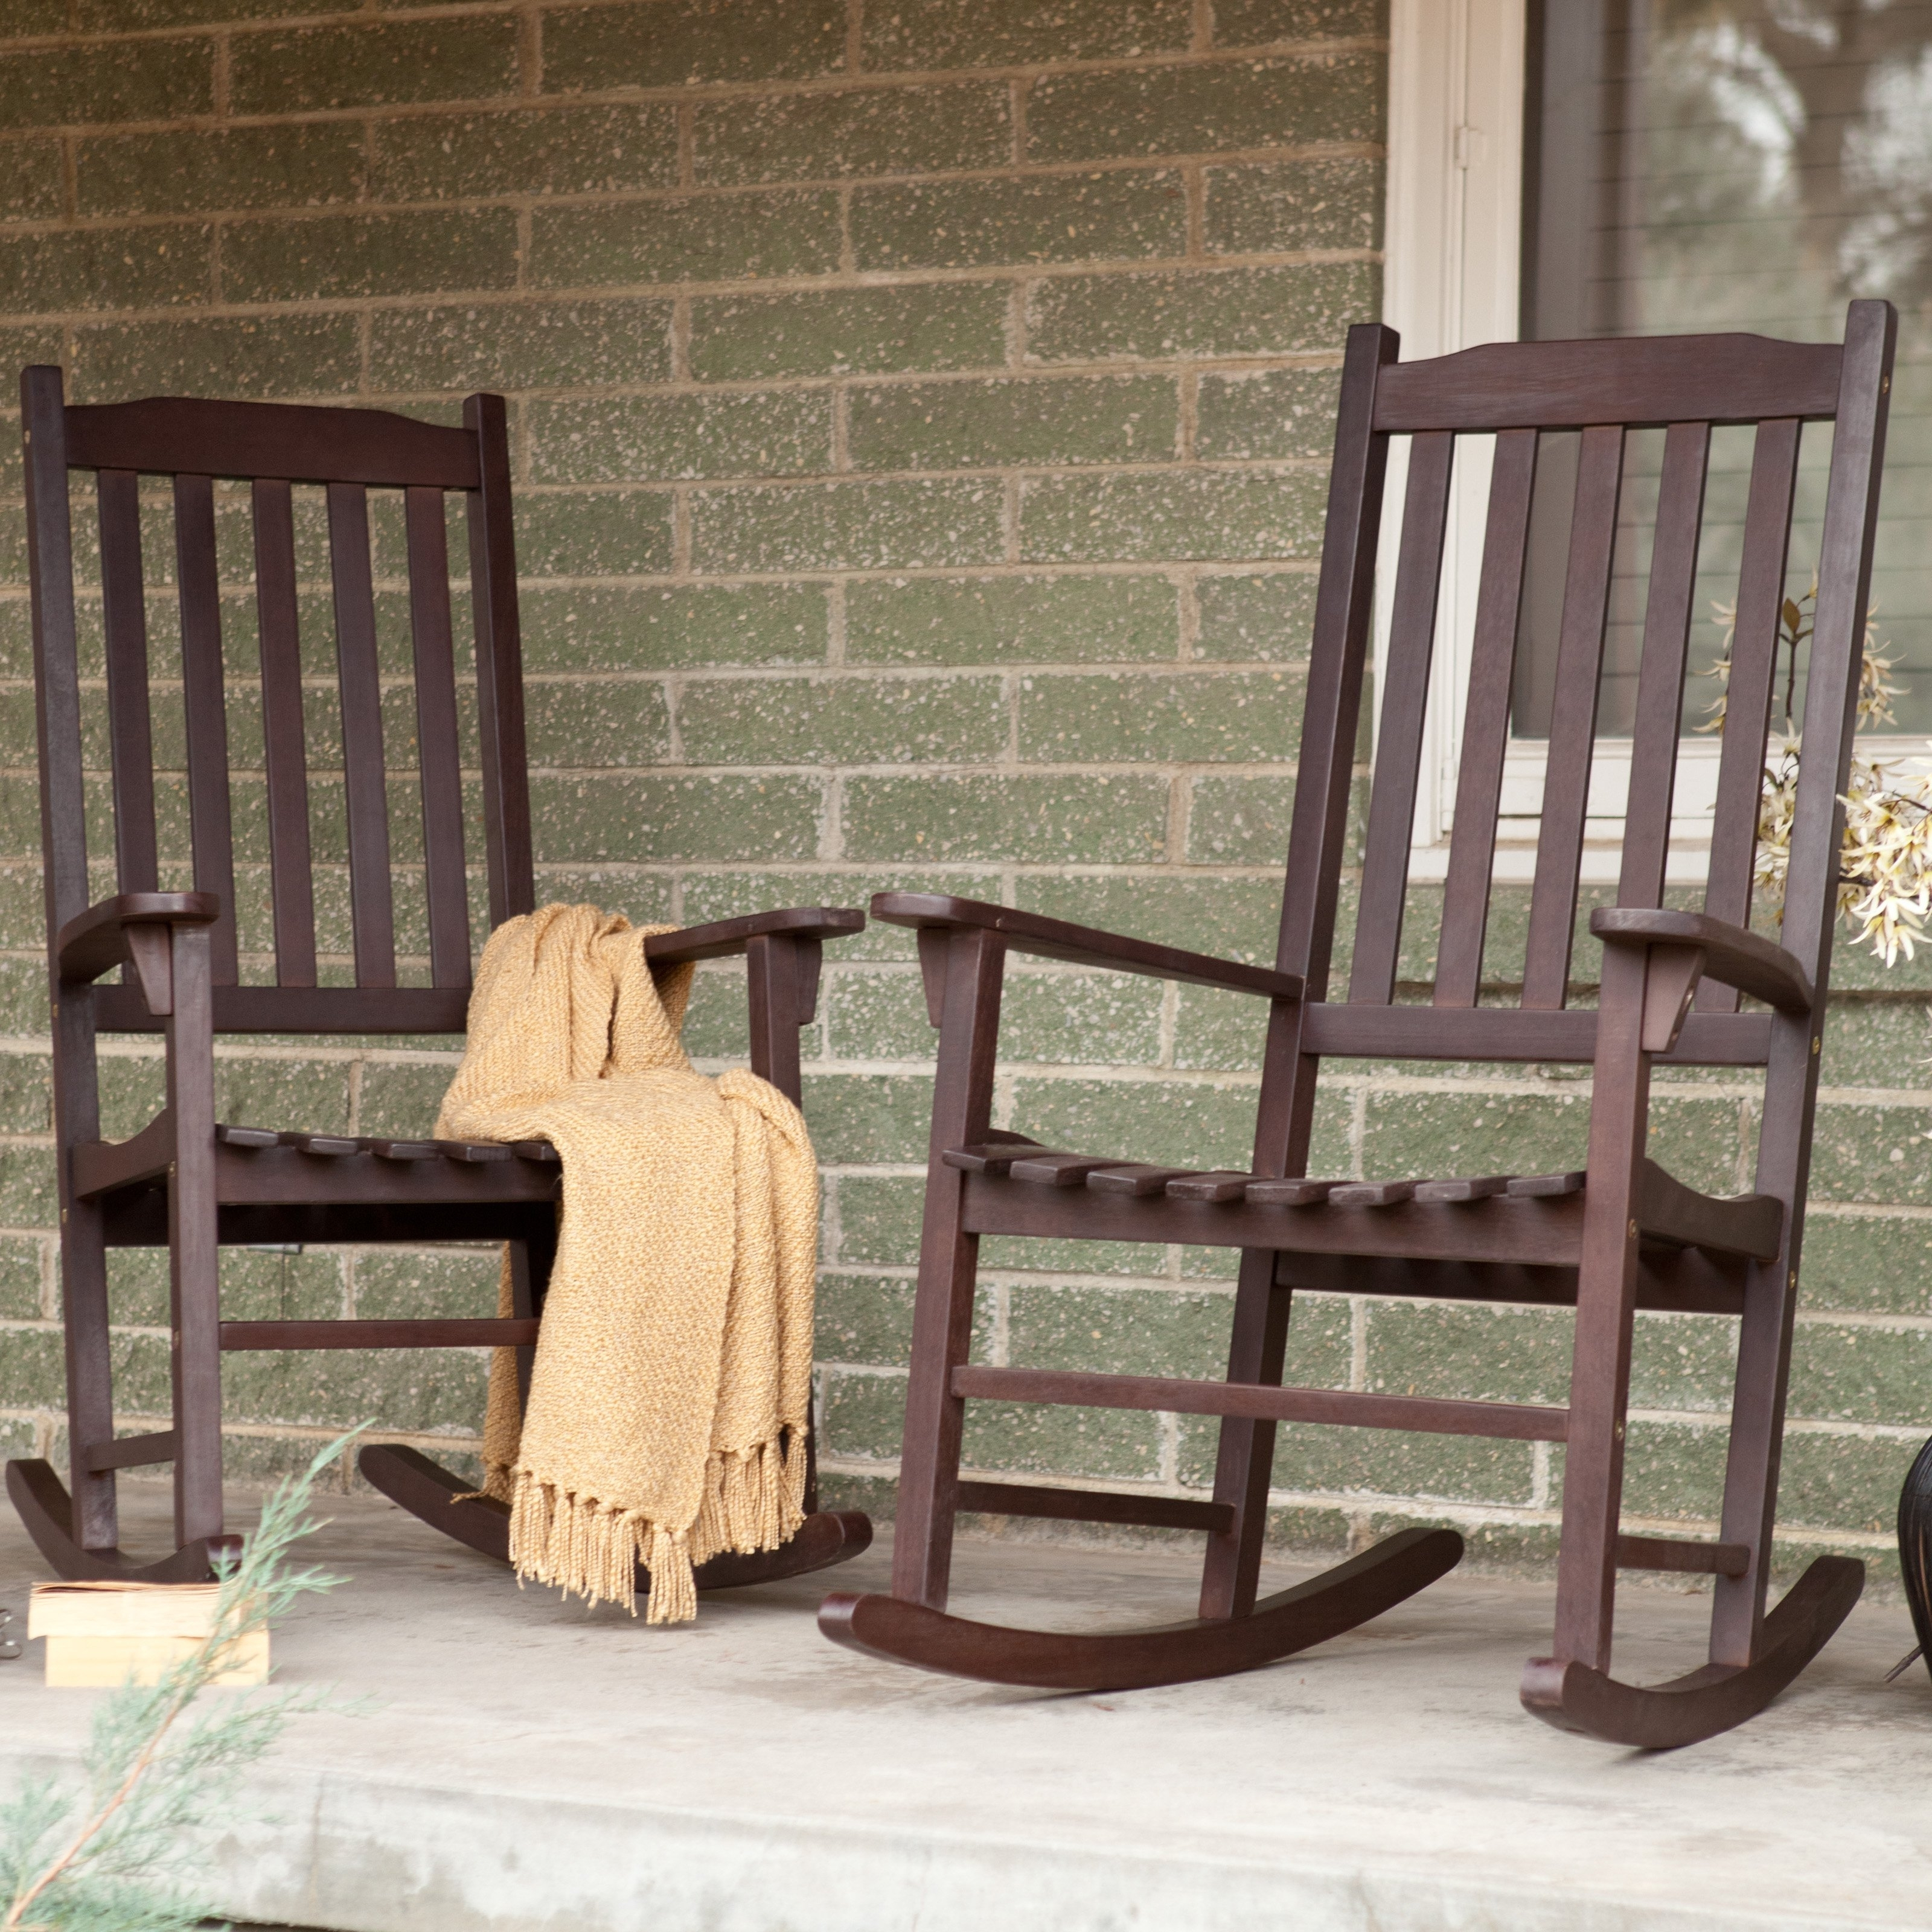 How To Choose Comfortable Outdoor Rocking Chairs – Yonohomedesign Within Used Patio Rocking Chairs (View 2 of 15)